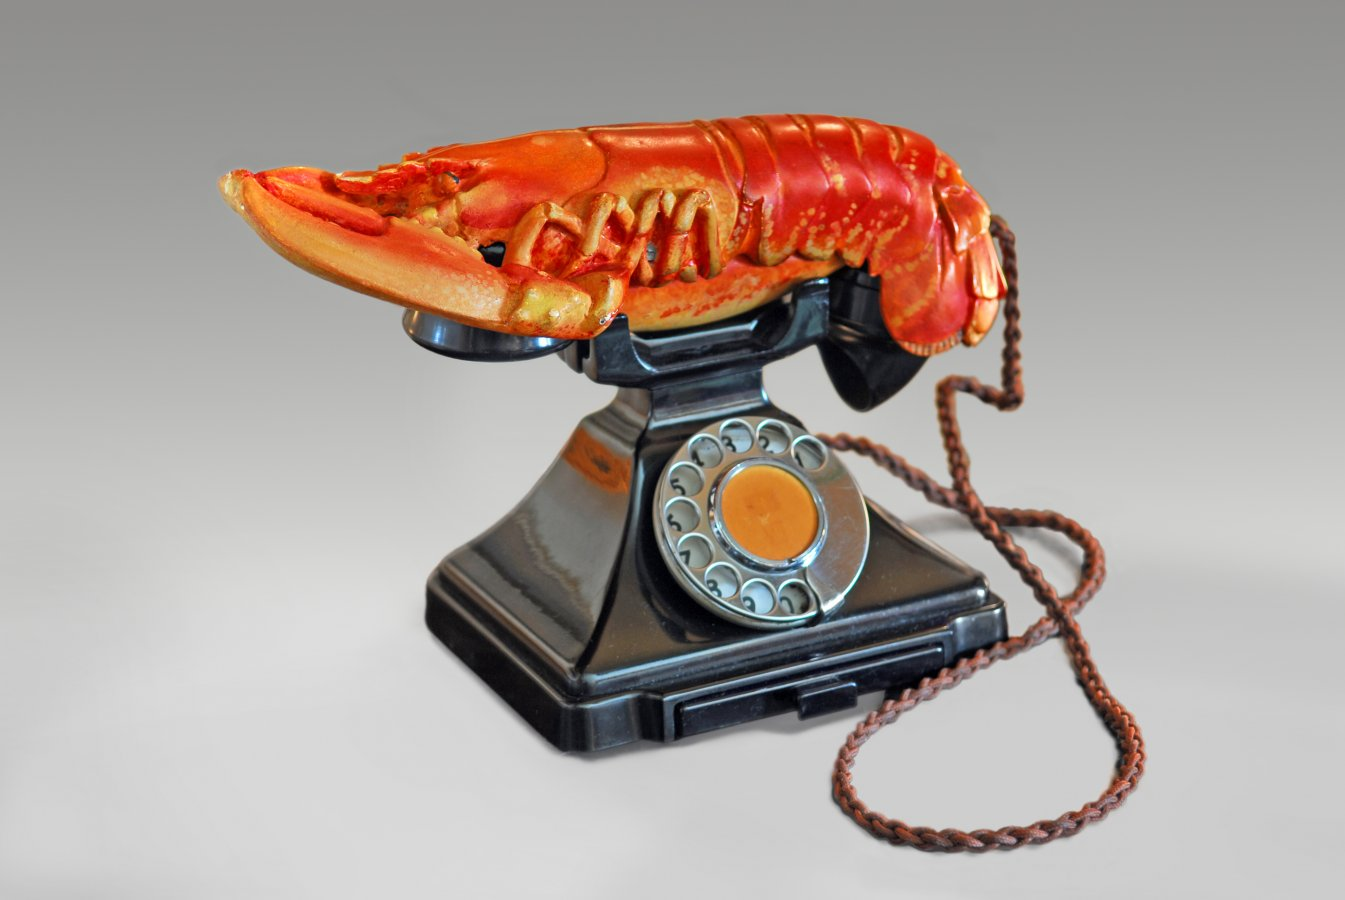 Salvador Dalí, Hummertelefon, 1938, West Dean College of Arts and Conservation © VG Bild-Kunst, Bonn 2020